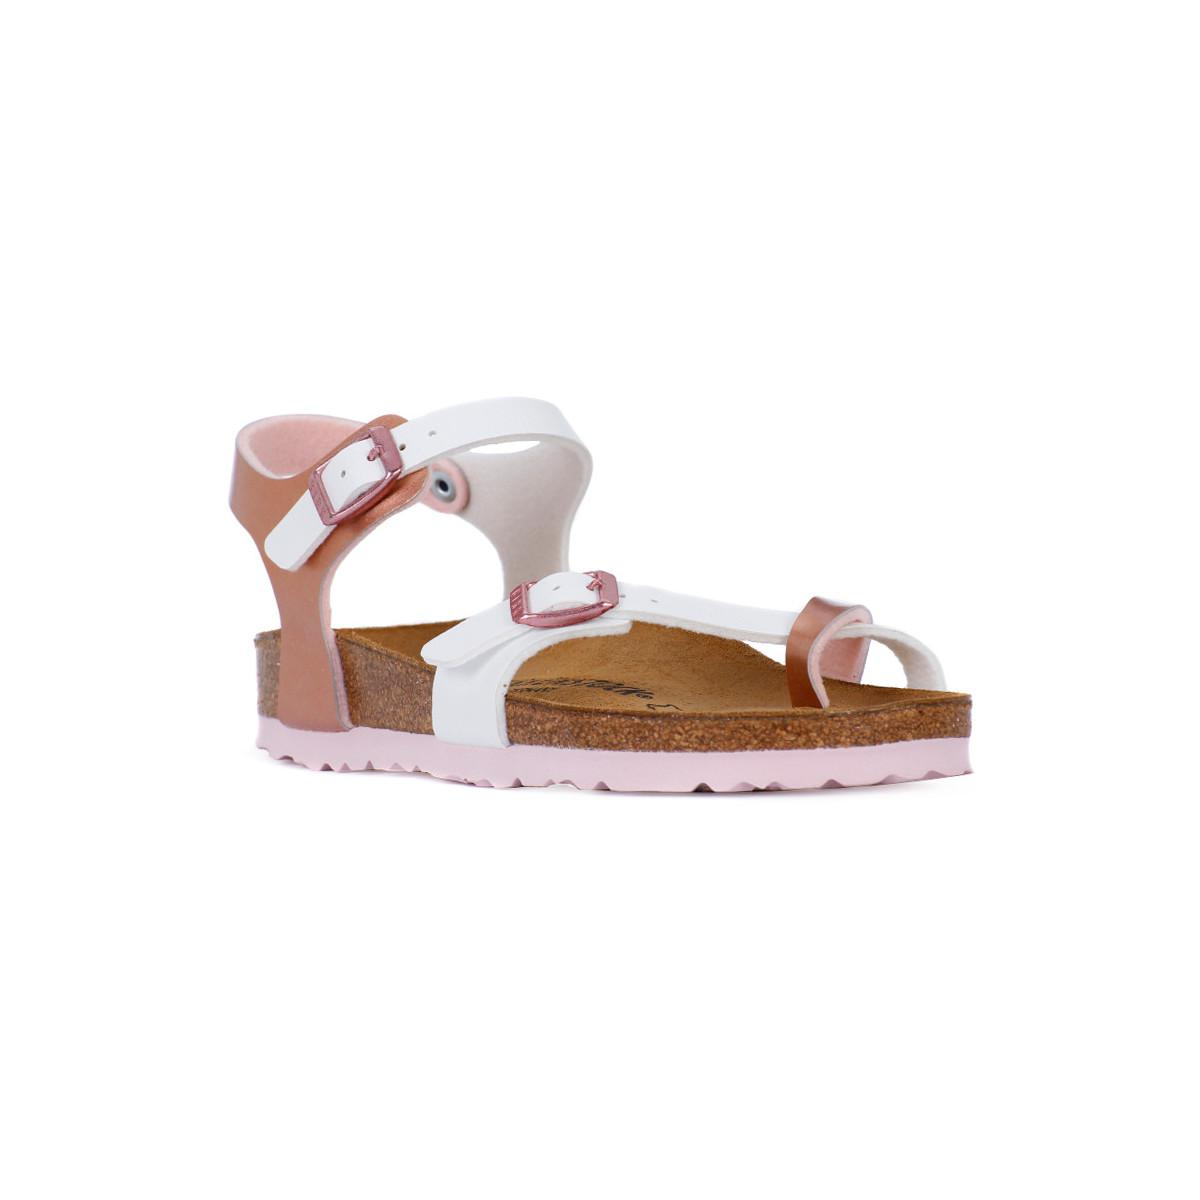 1007c7adc16 Birkenstock Taormina Soft Women s Mules   Casual Shoes In Pink in ...